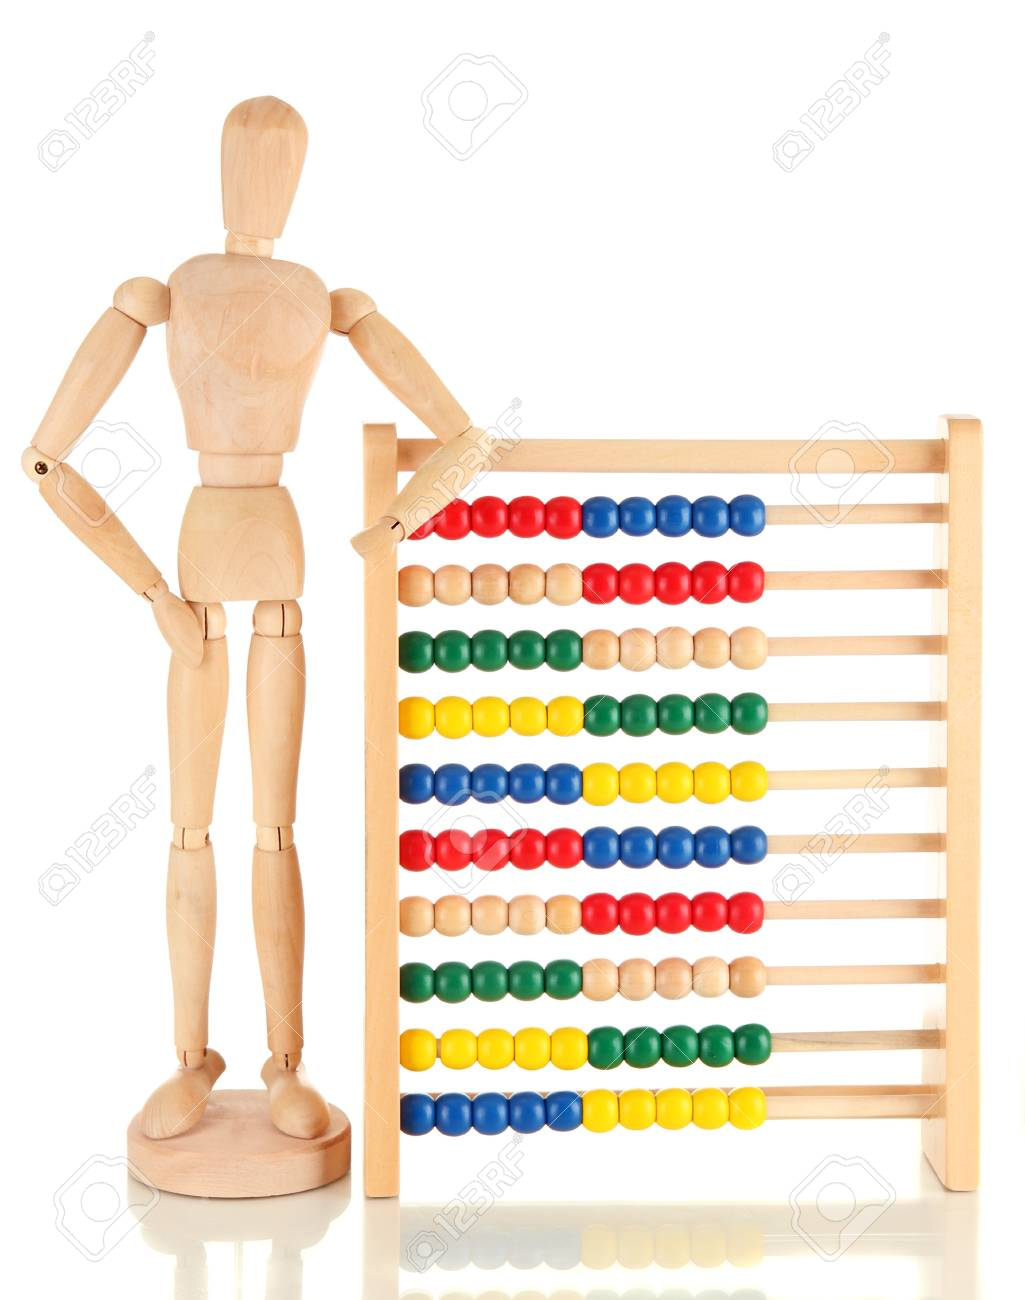 Bright toy abacus and wooden dummy, isolated on white Stock Photo - 17401256